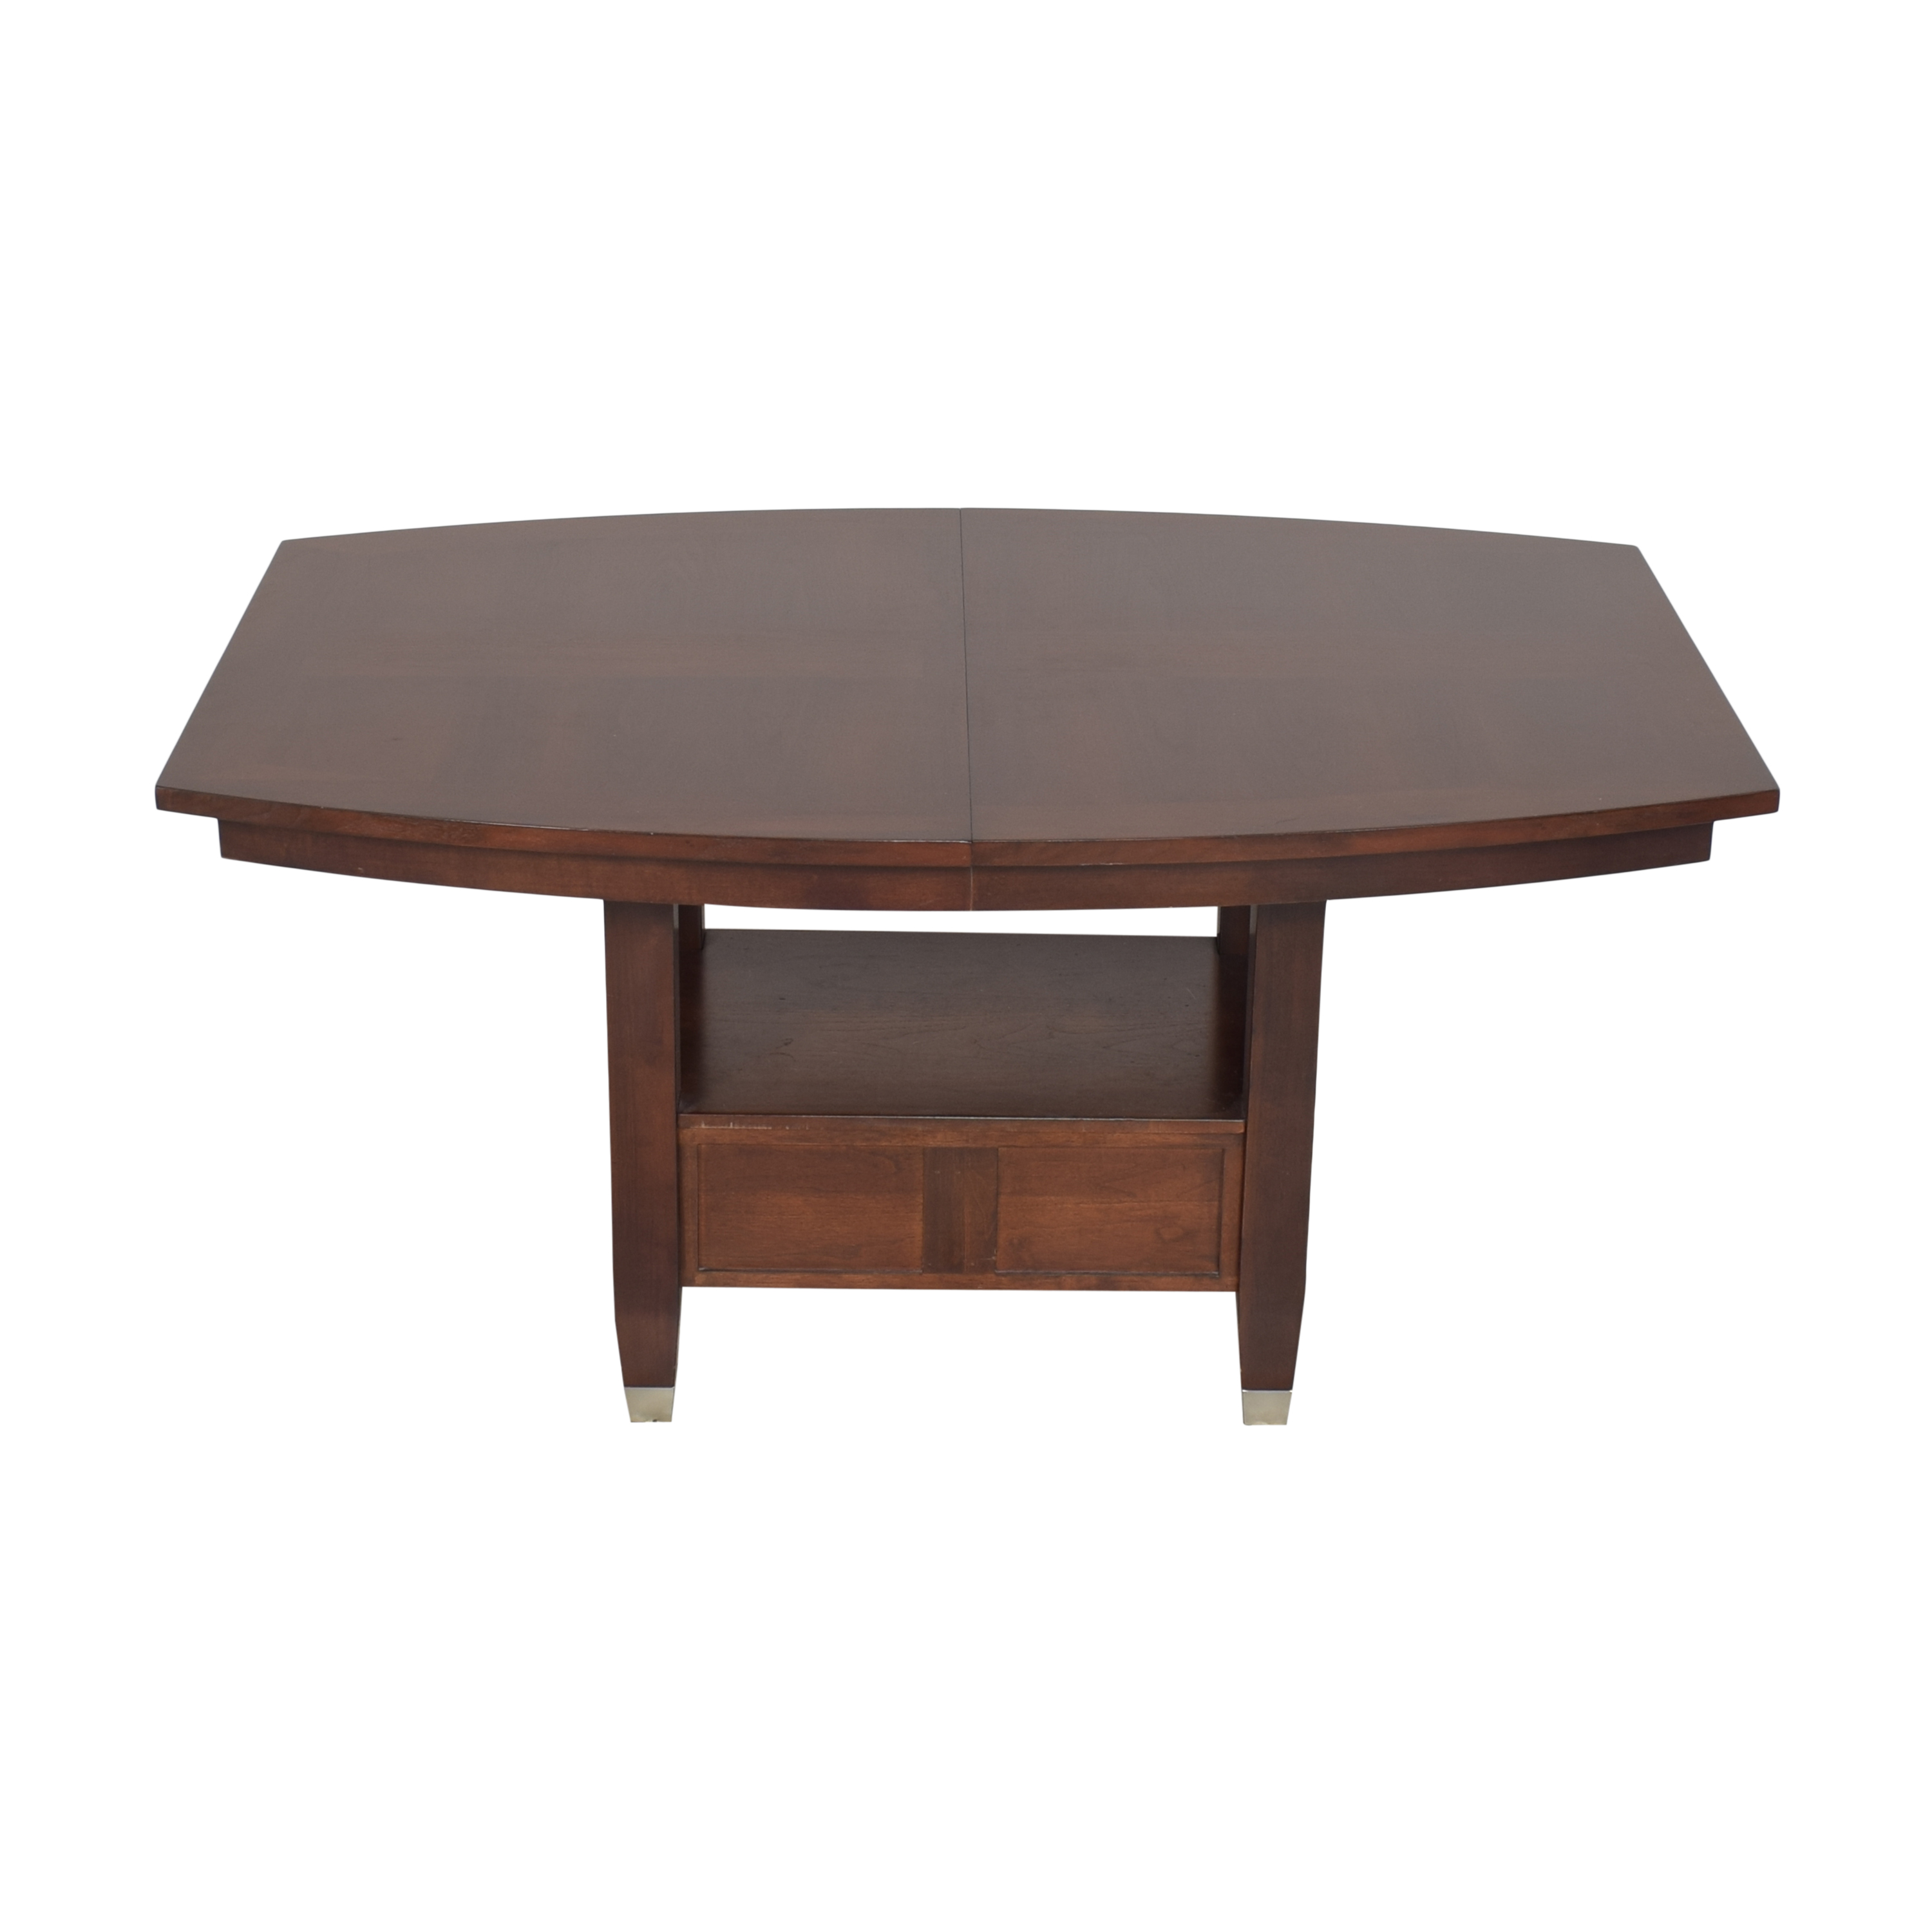 Broyhill Furniture Extendable Dining Table / Dinner Tables